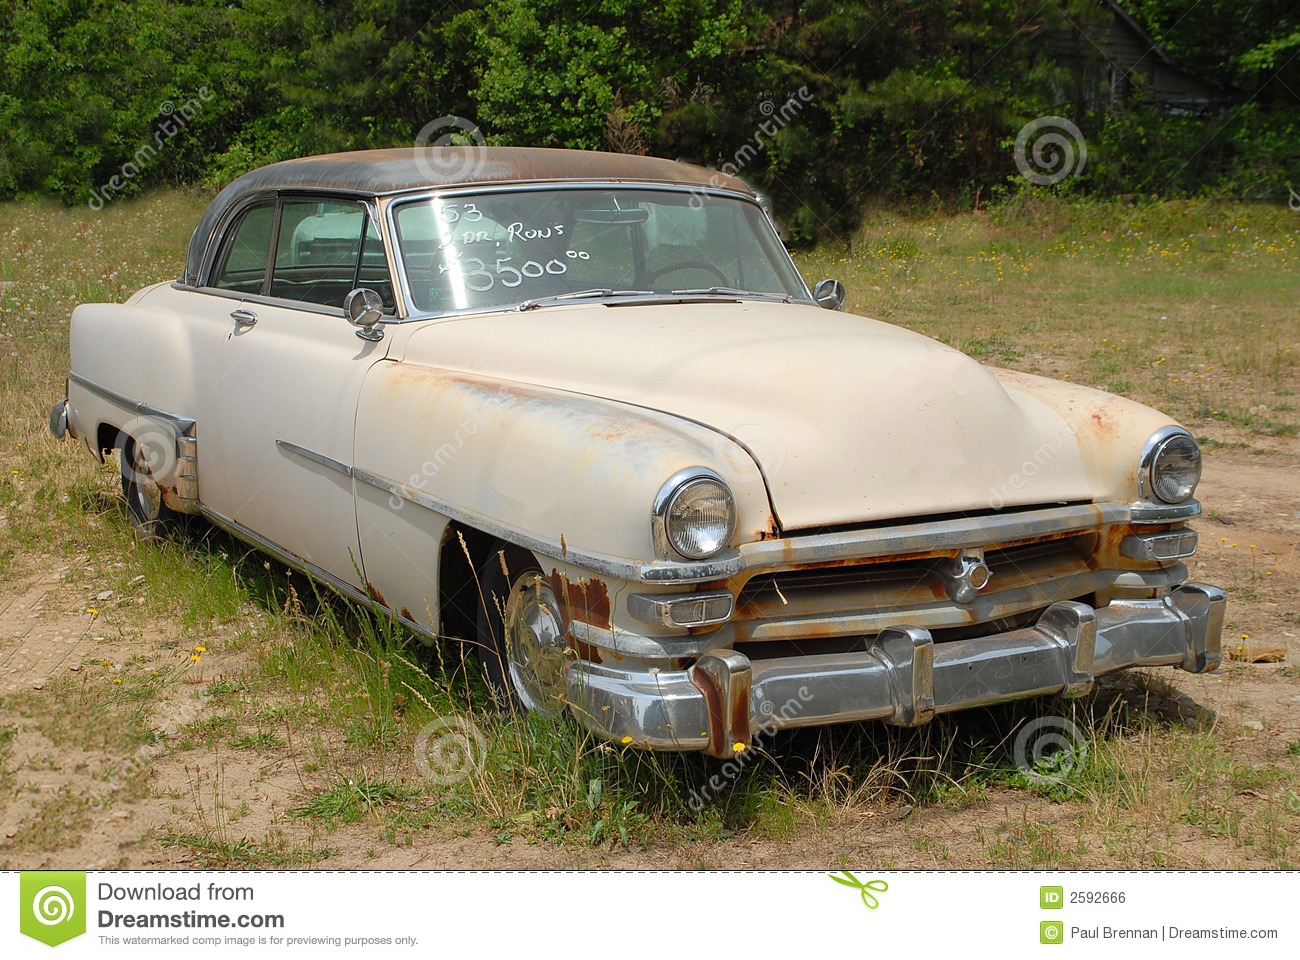 Vintage Car For Sale stock photo. Image of bumper, grill - 2592666